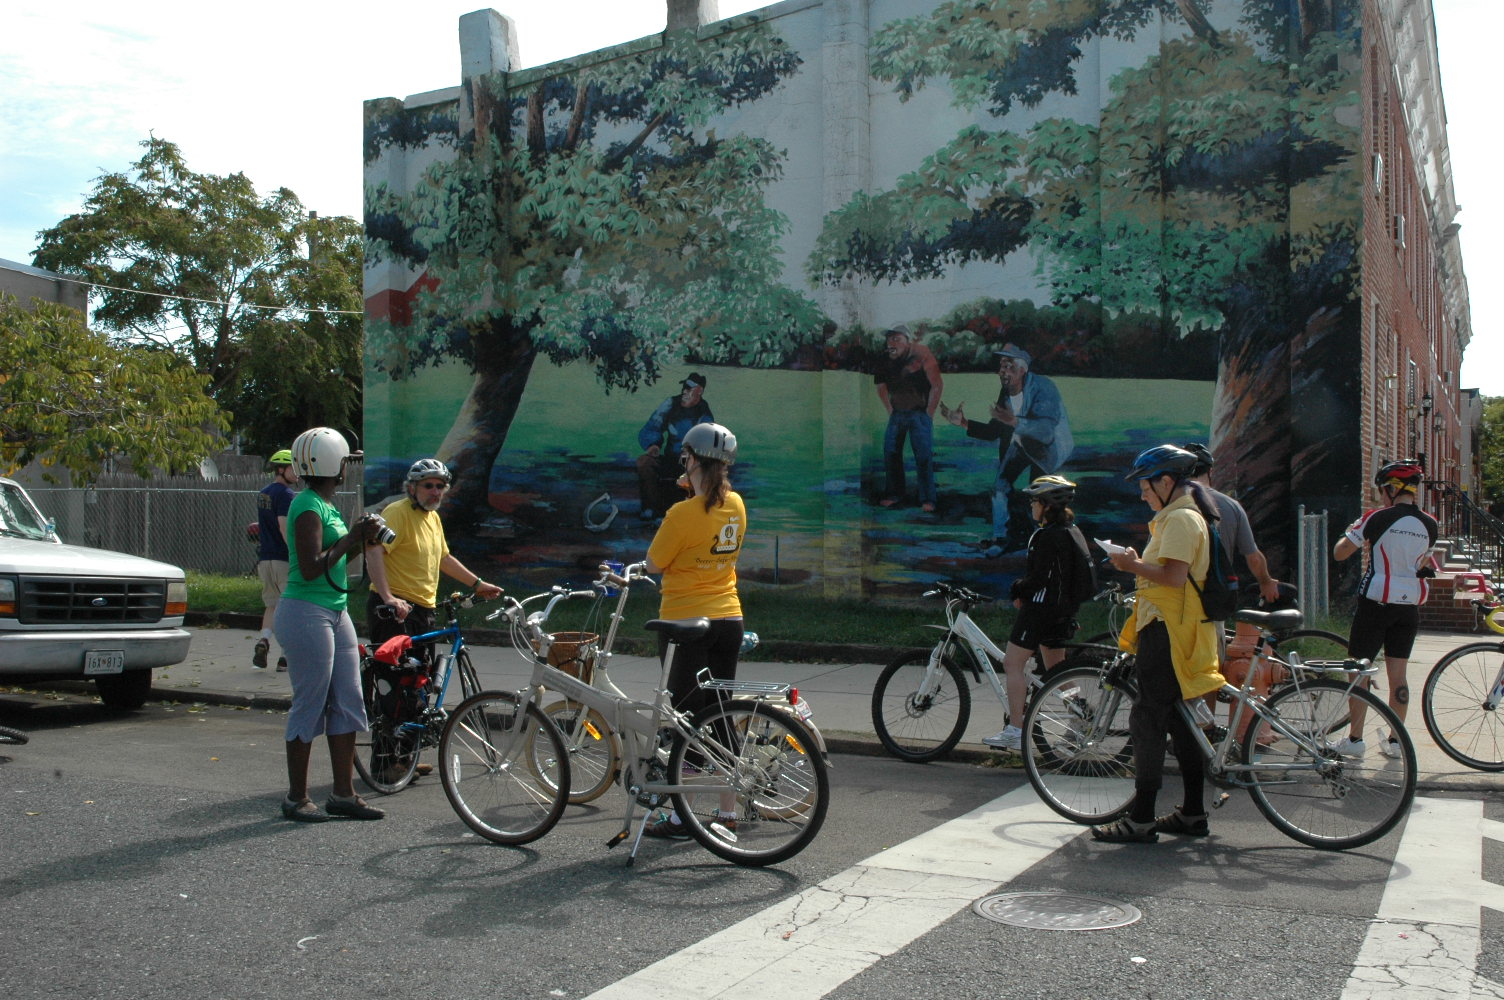 West baltimore murals and history by bike baltimore heritage for Baltimore mural program